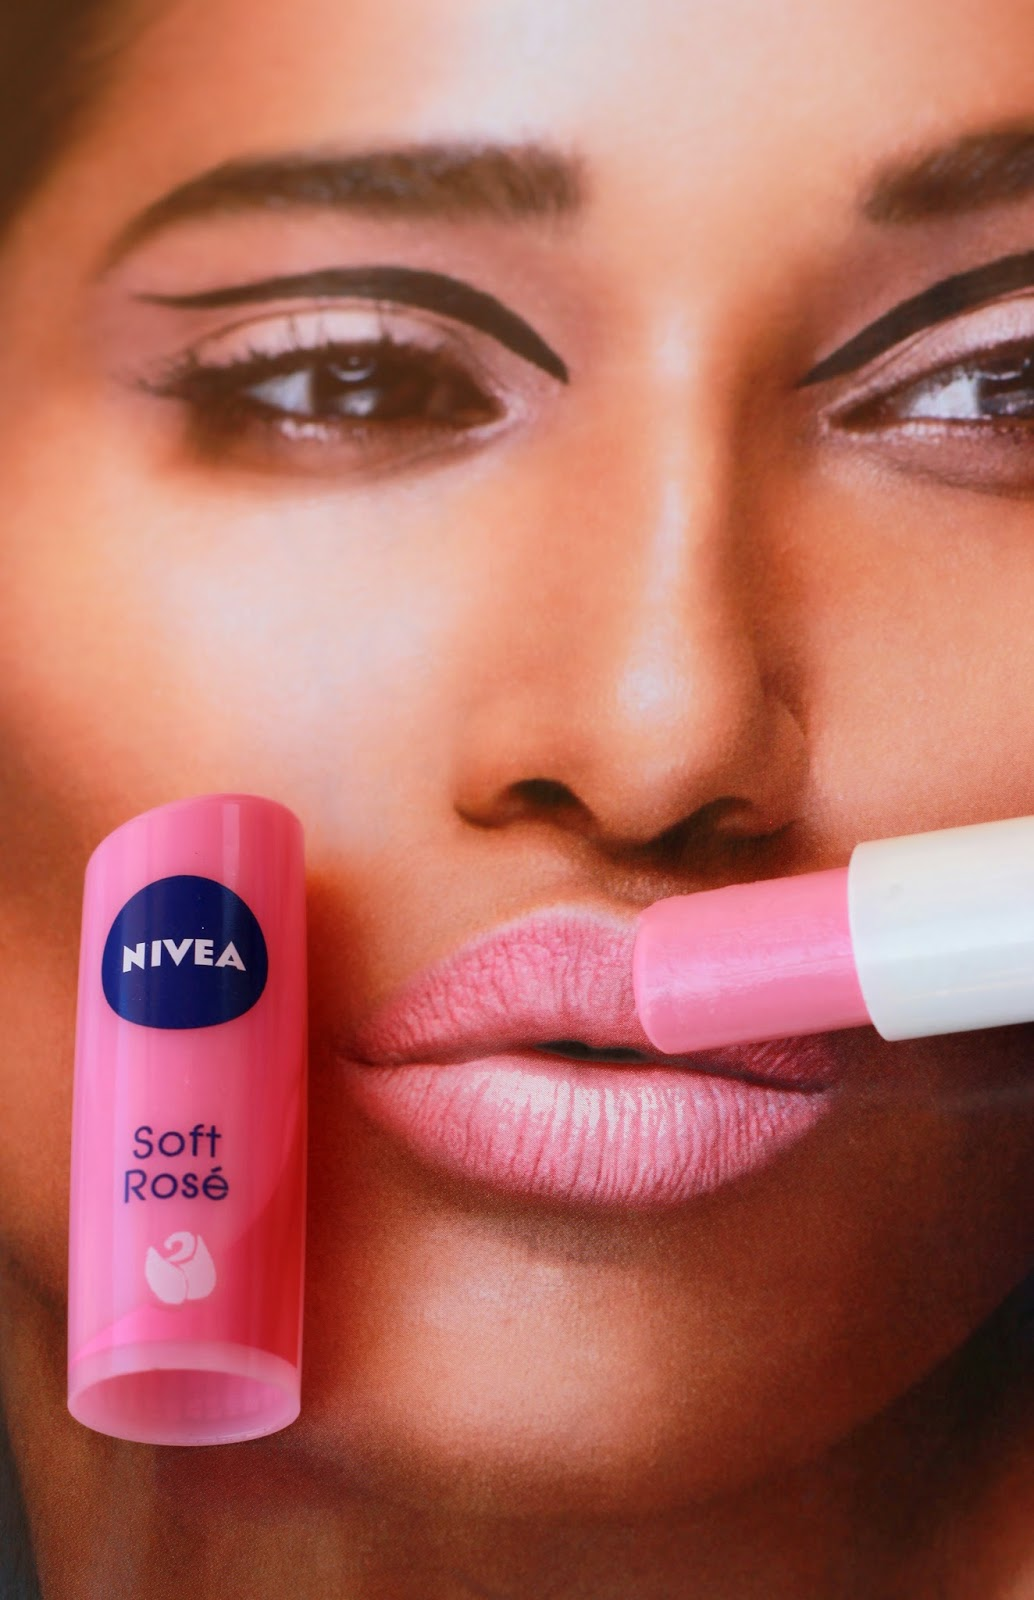 I Am Bummed After Using This Lip Balm! - Review of Nivea Lip balm in Soft Rose